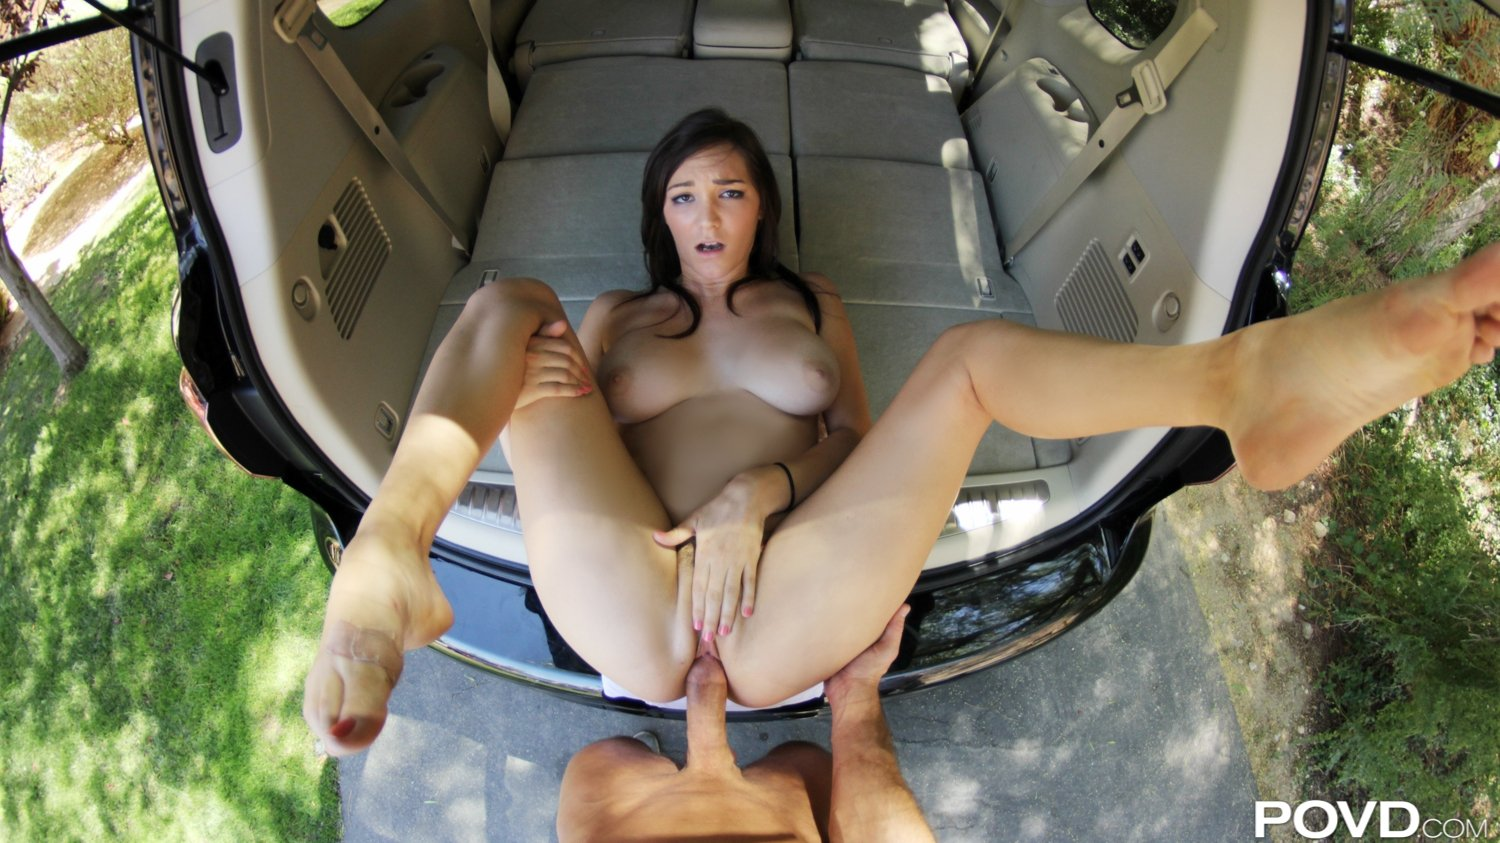 womenfatsex ebony xxx videos download